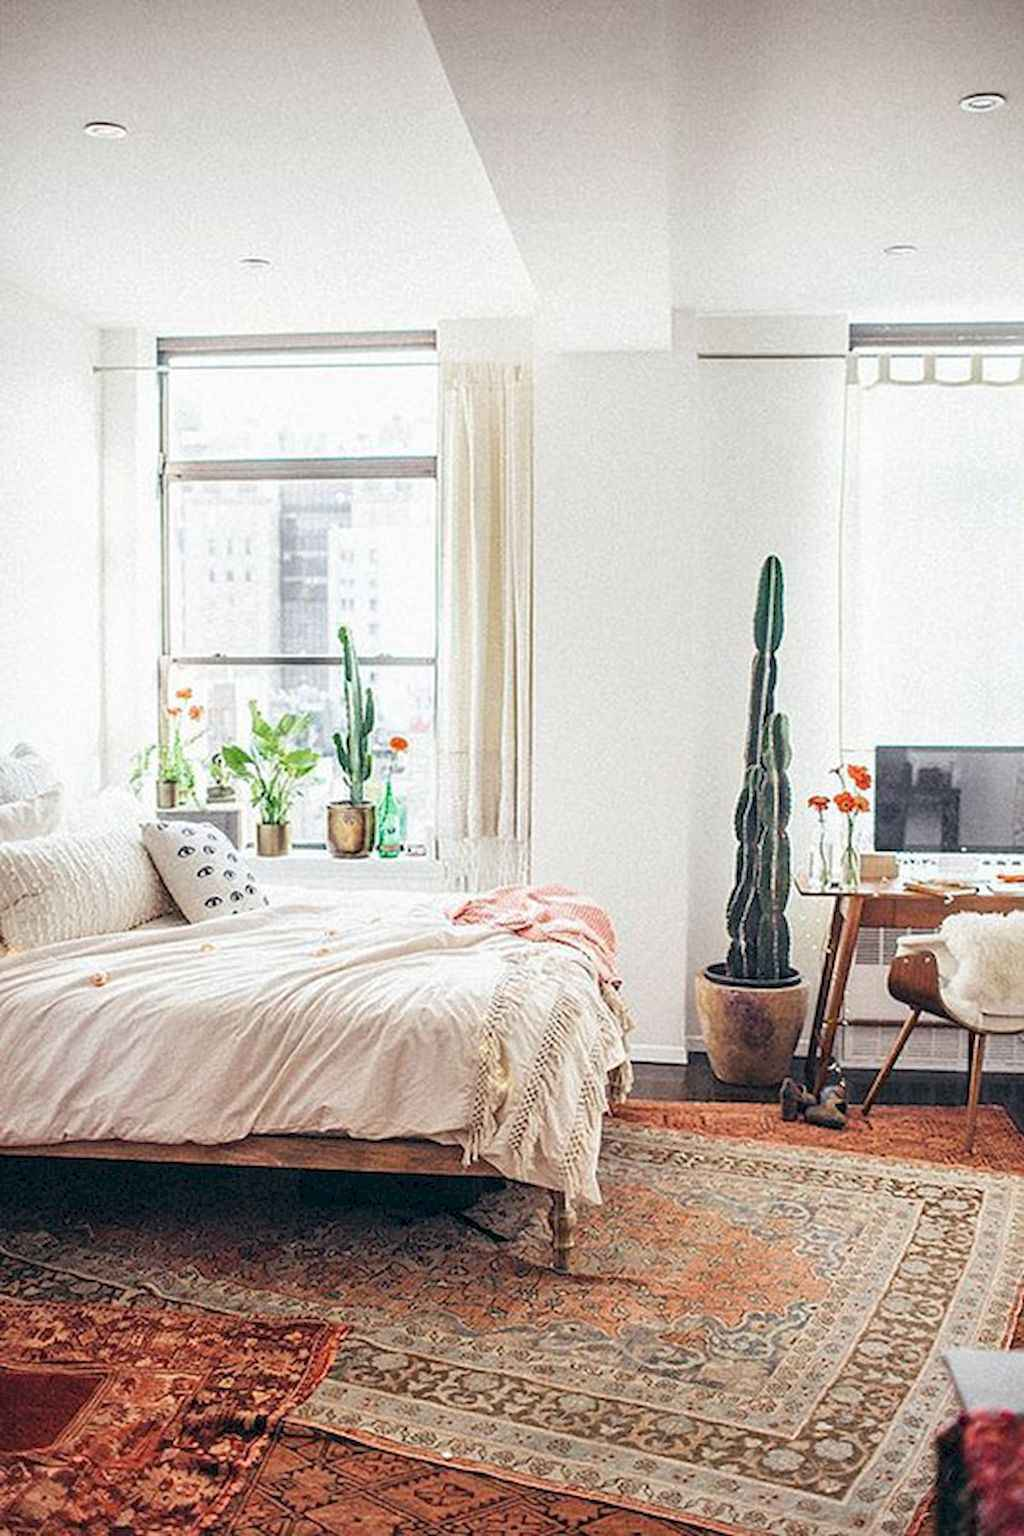 Couples first apartment decorating ideas (106)